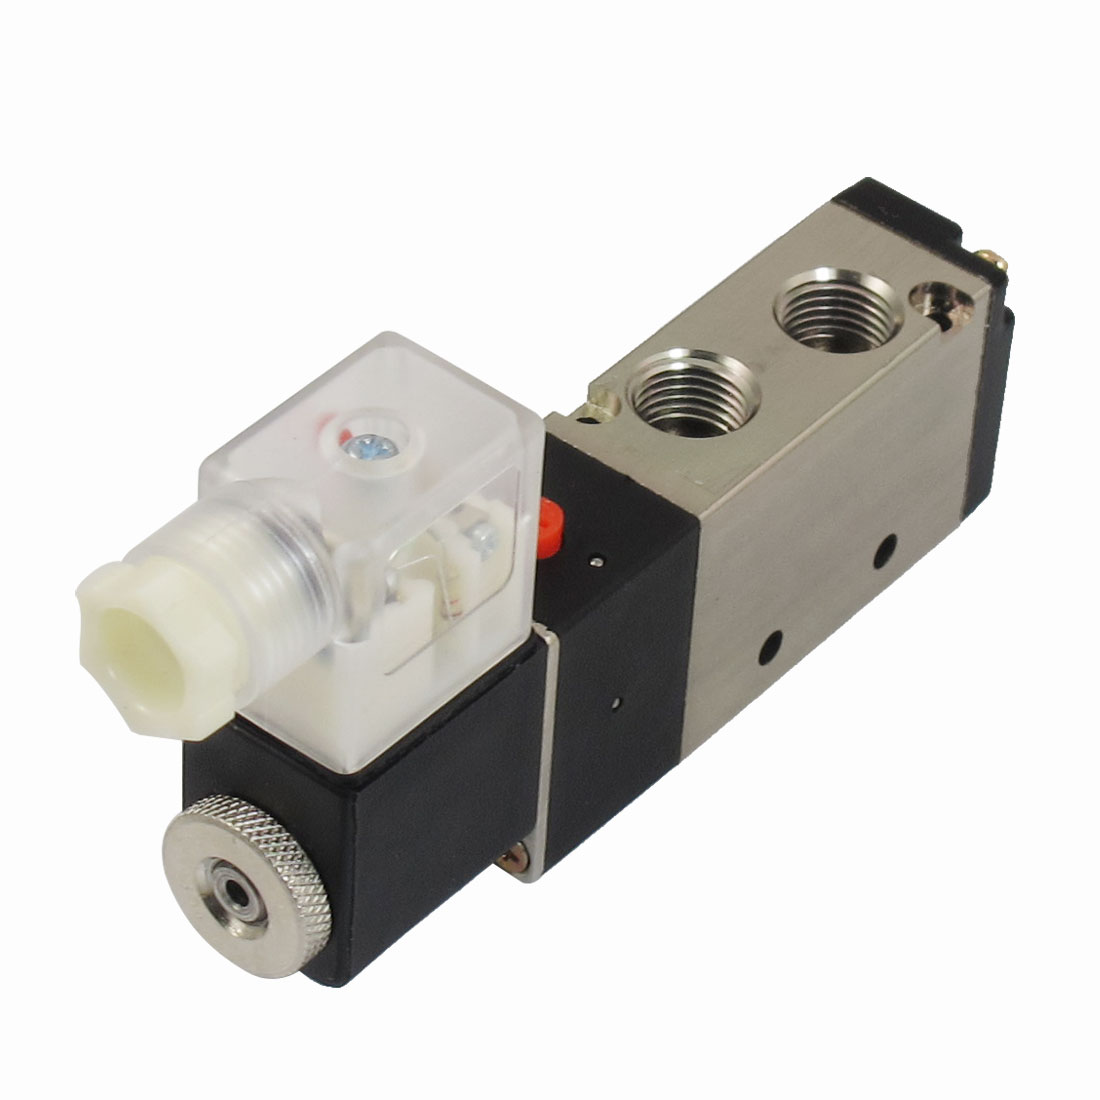 AC 220V 2 Position 5 Way Pneumatic Electromagnetic Solenoid Valve G1/4""